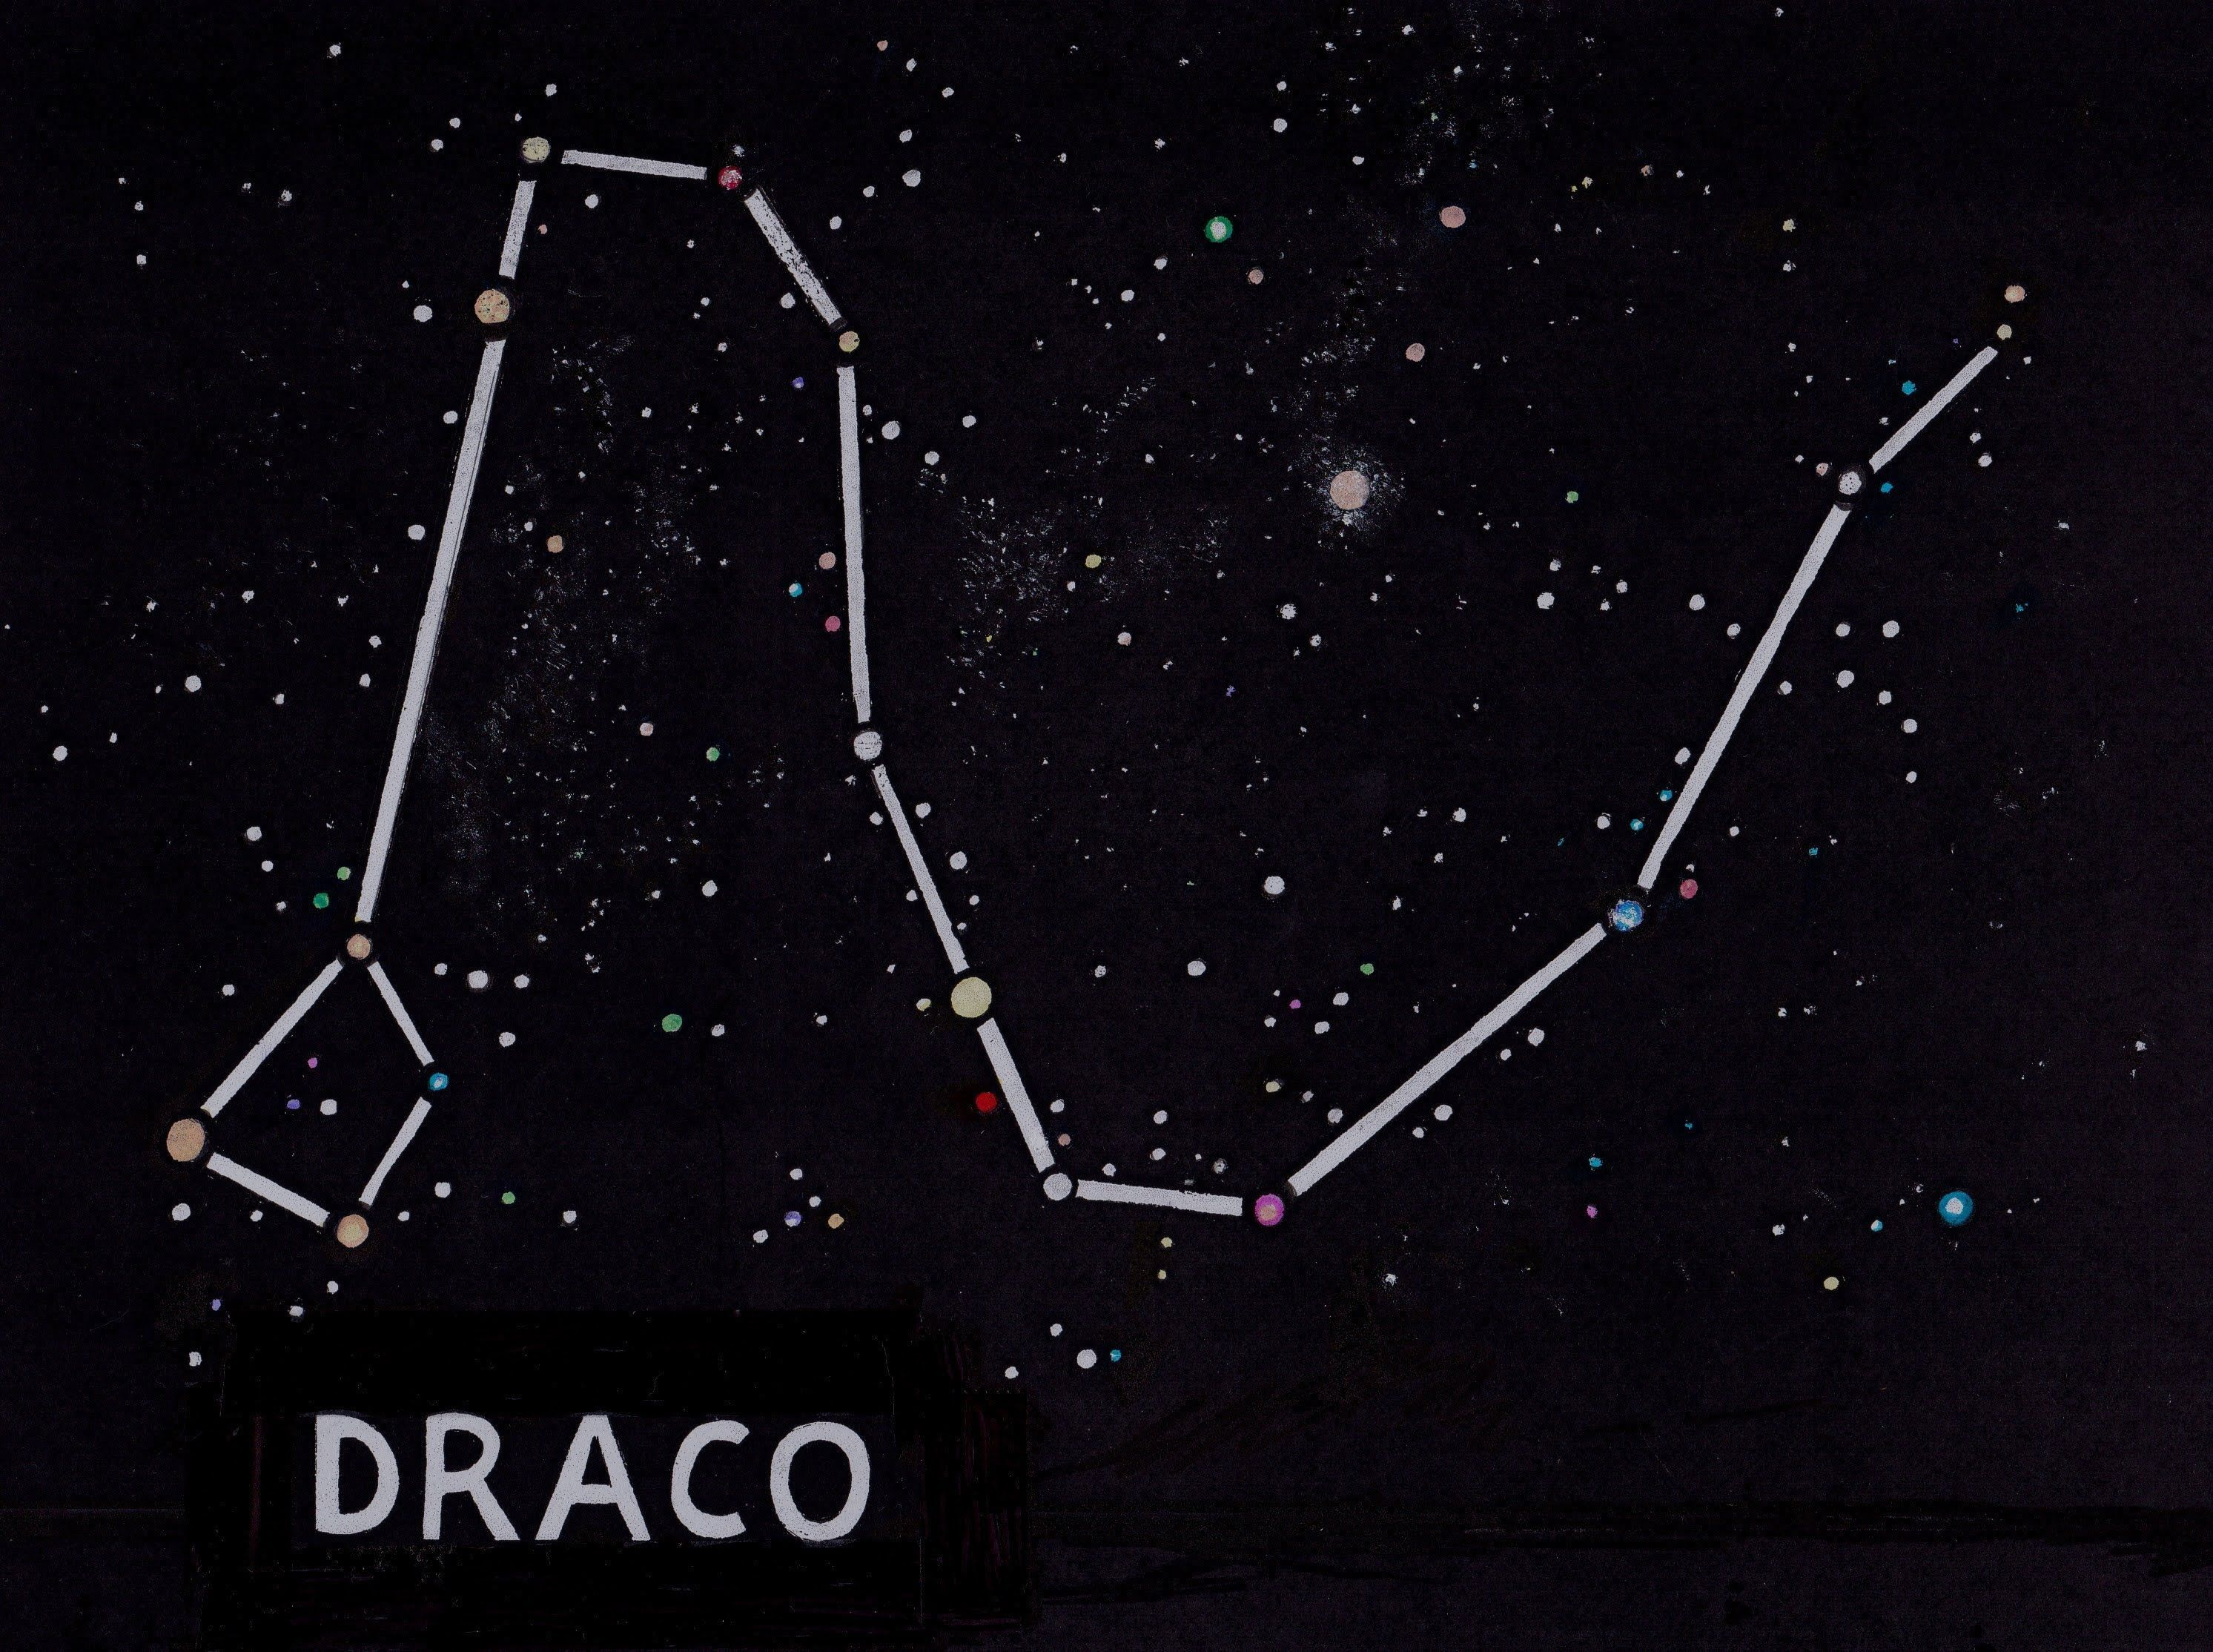 draco constellation tattoo in 2020 Draco constellation